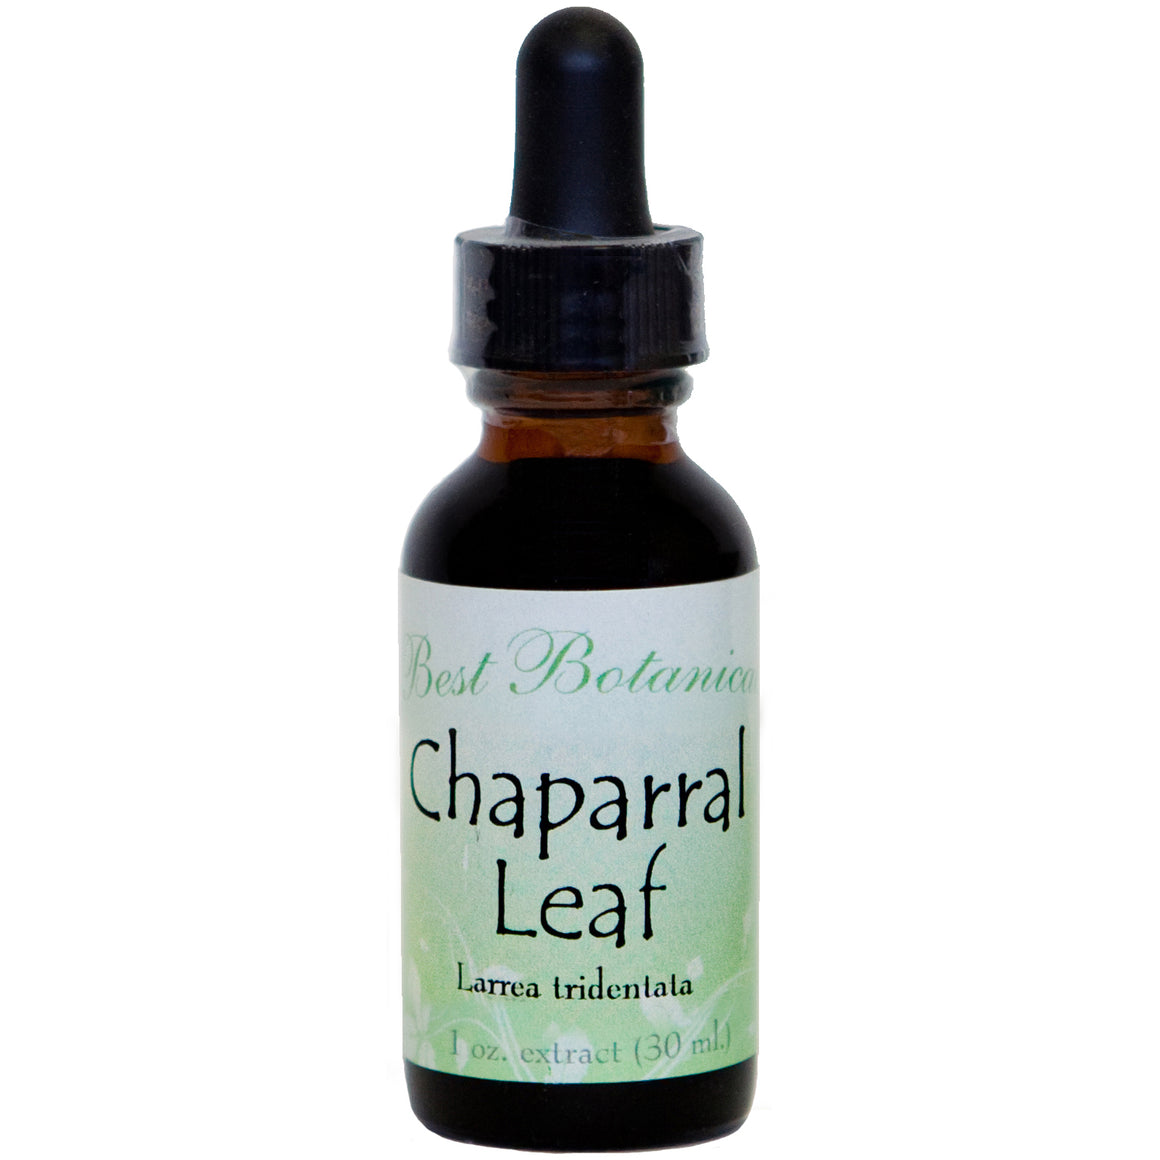 Chaparral Leaf Extract